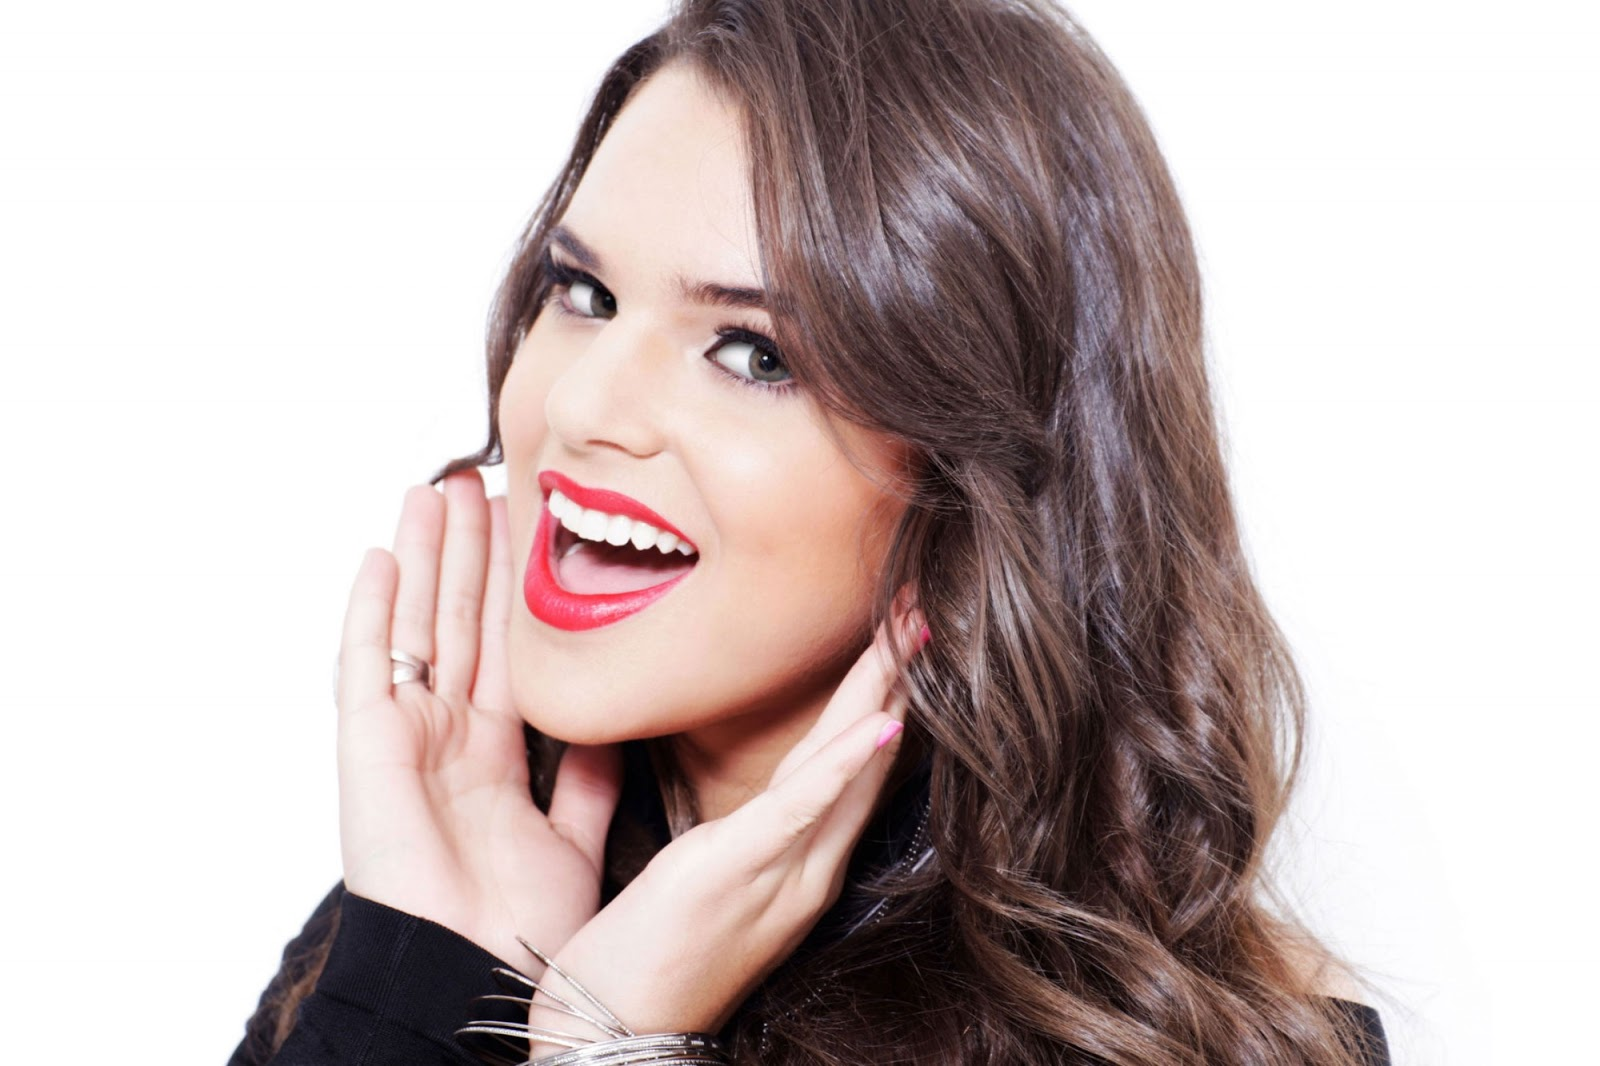 wilsons latin singles Meet latina singles in wilson, north carolina online & connect in the chat rooms dhu is a 100% free dating site to meet latina women in wilson.